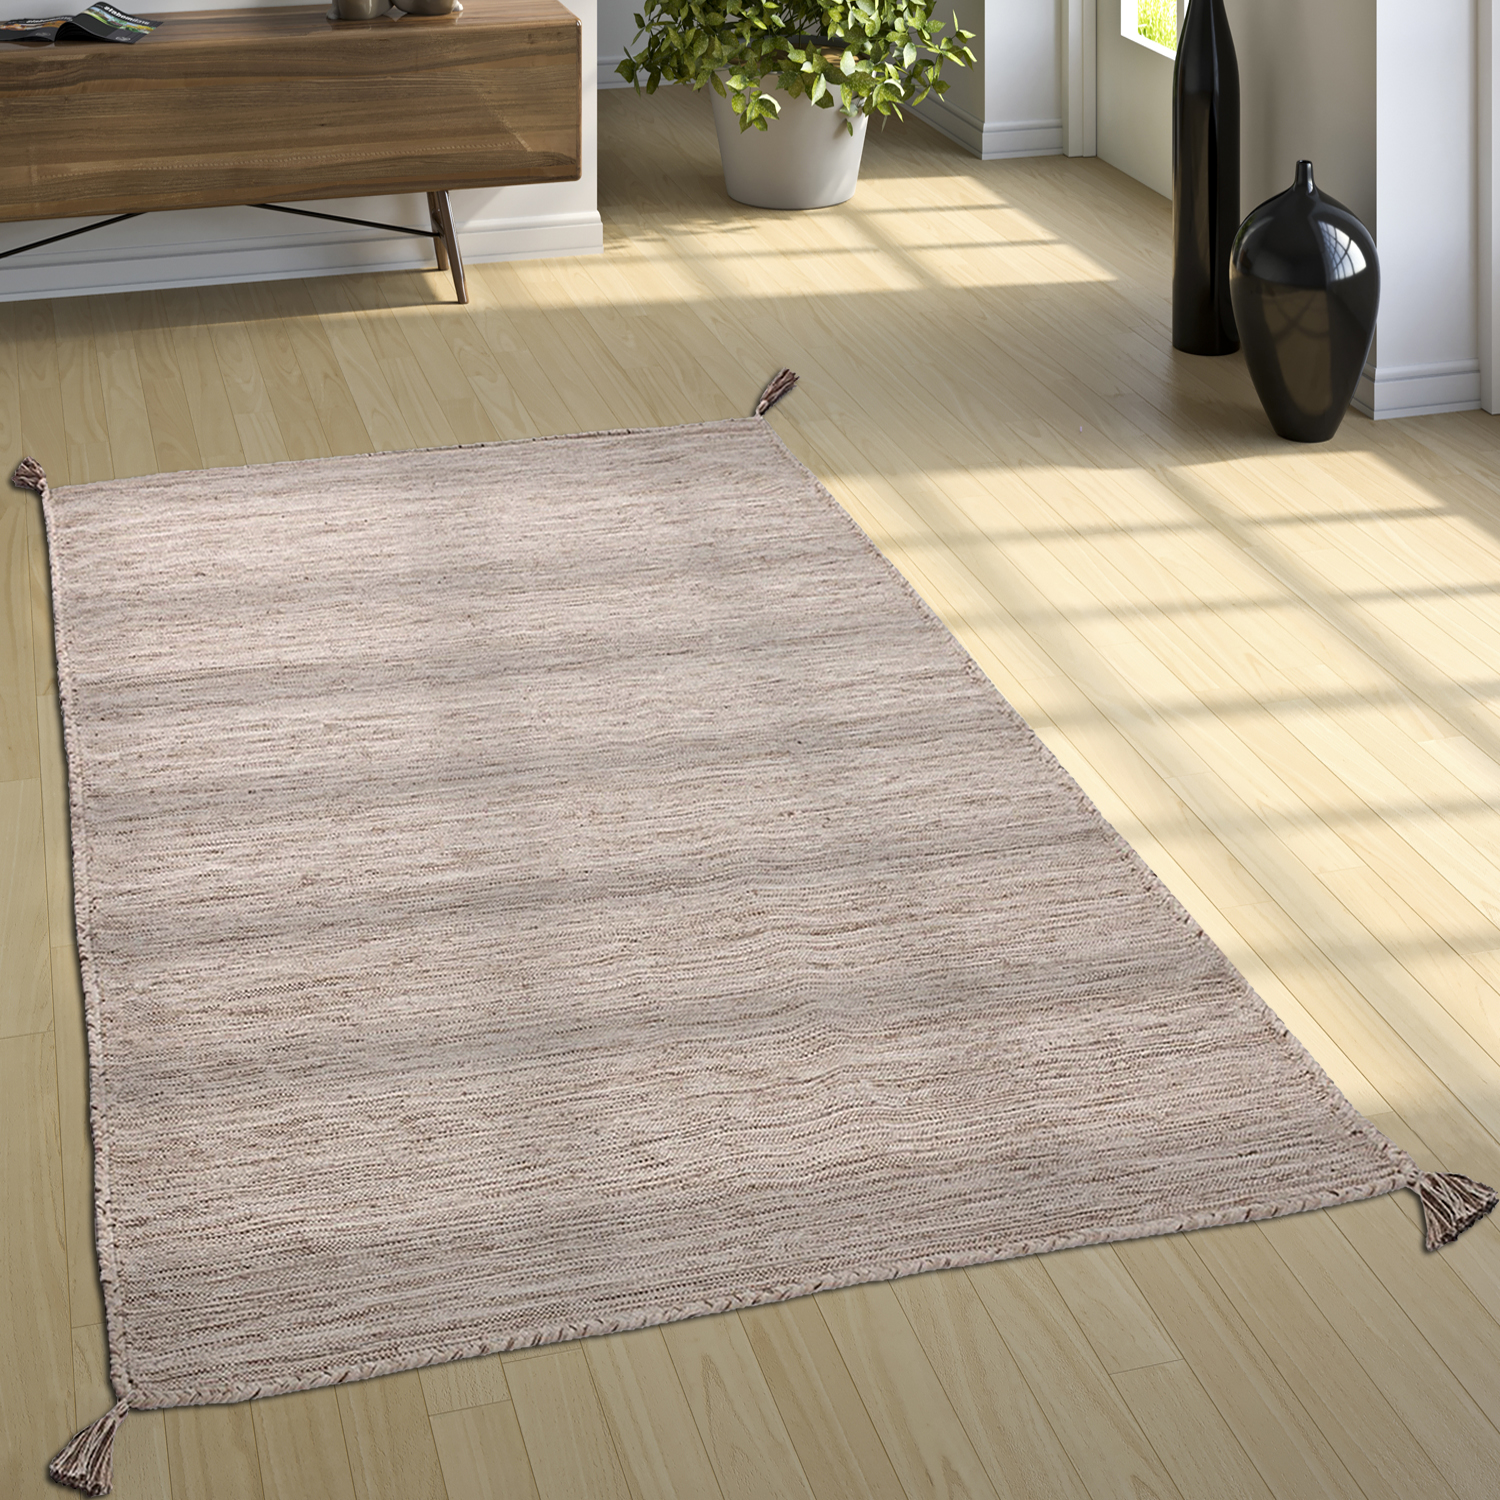 tapis de cr ateur tapis tiss kilim tiss main 100 coton moderne chin beige tapis tapis en. Black Bedroom Furniture Sets. Home Design Ideas